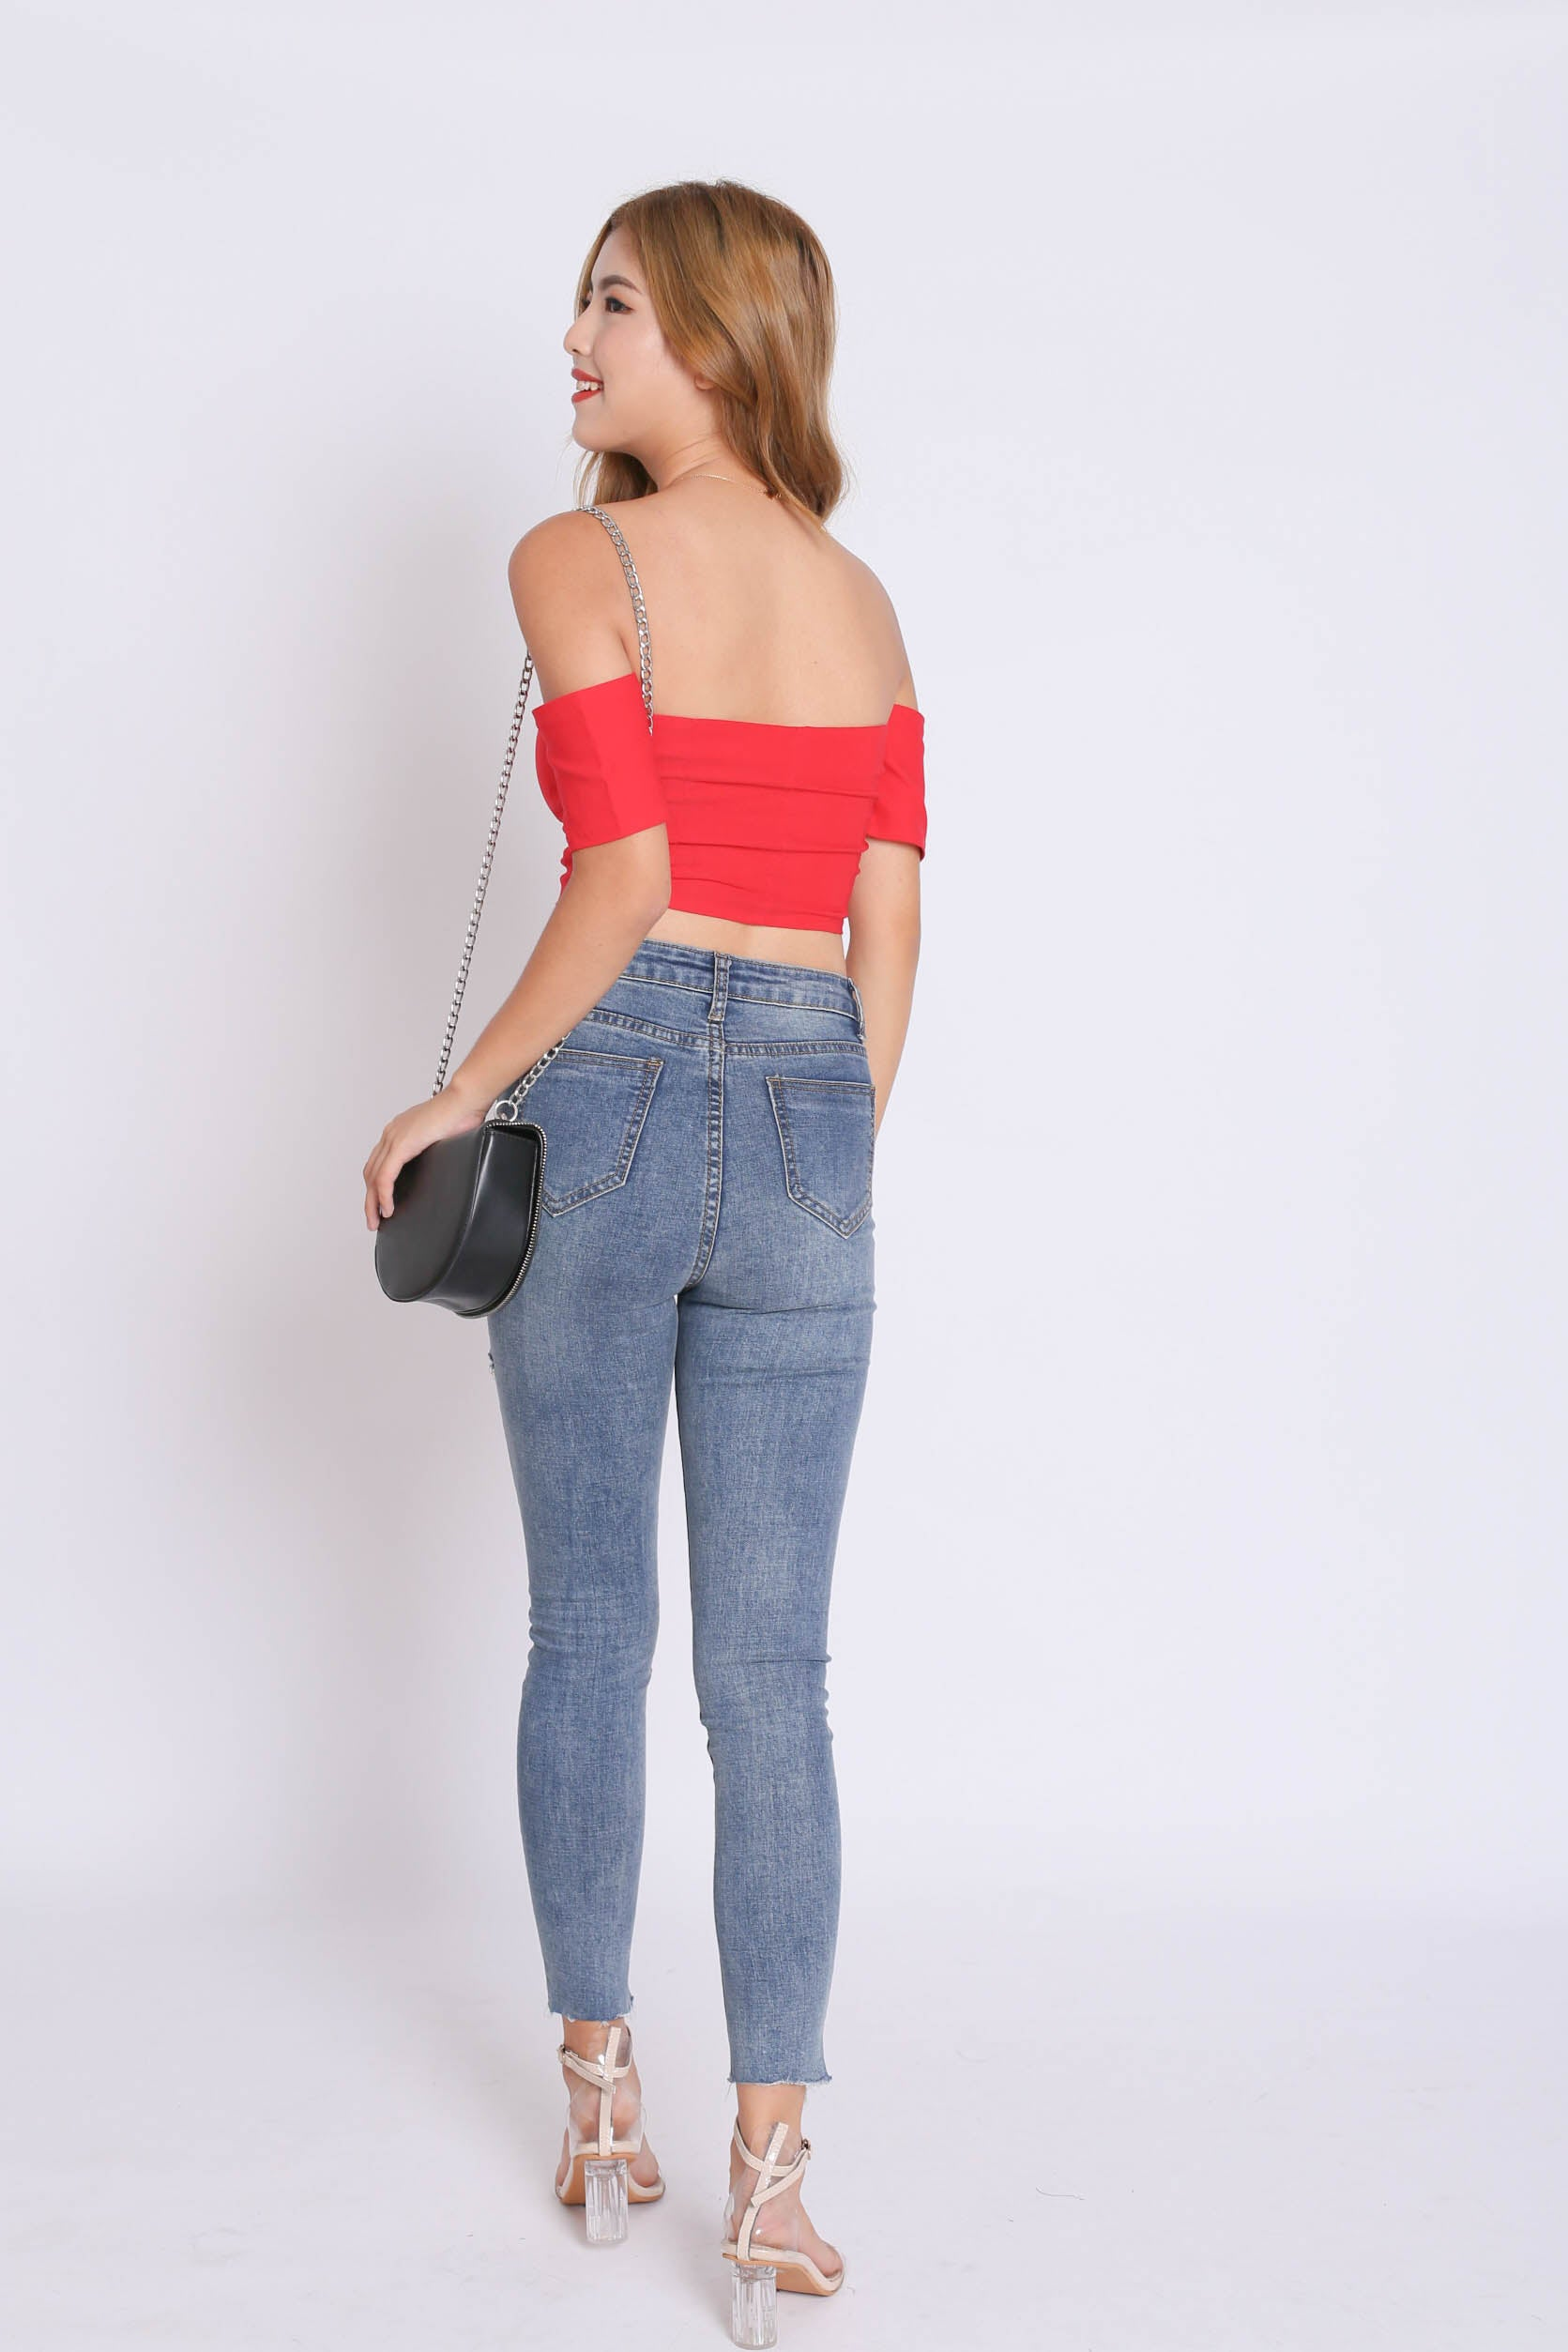 BUSTIER OFF SHOULDER CROP TOP IN RED